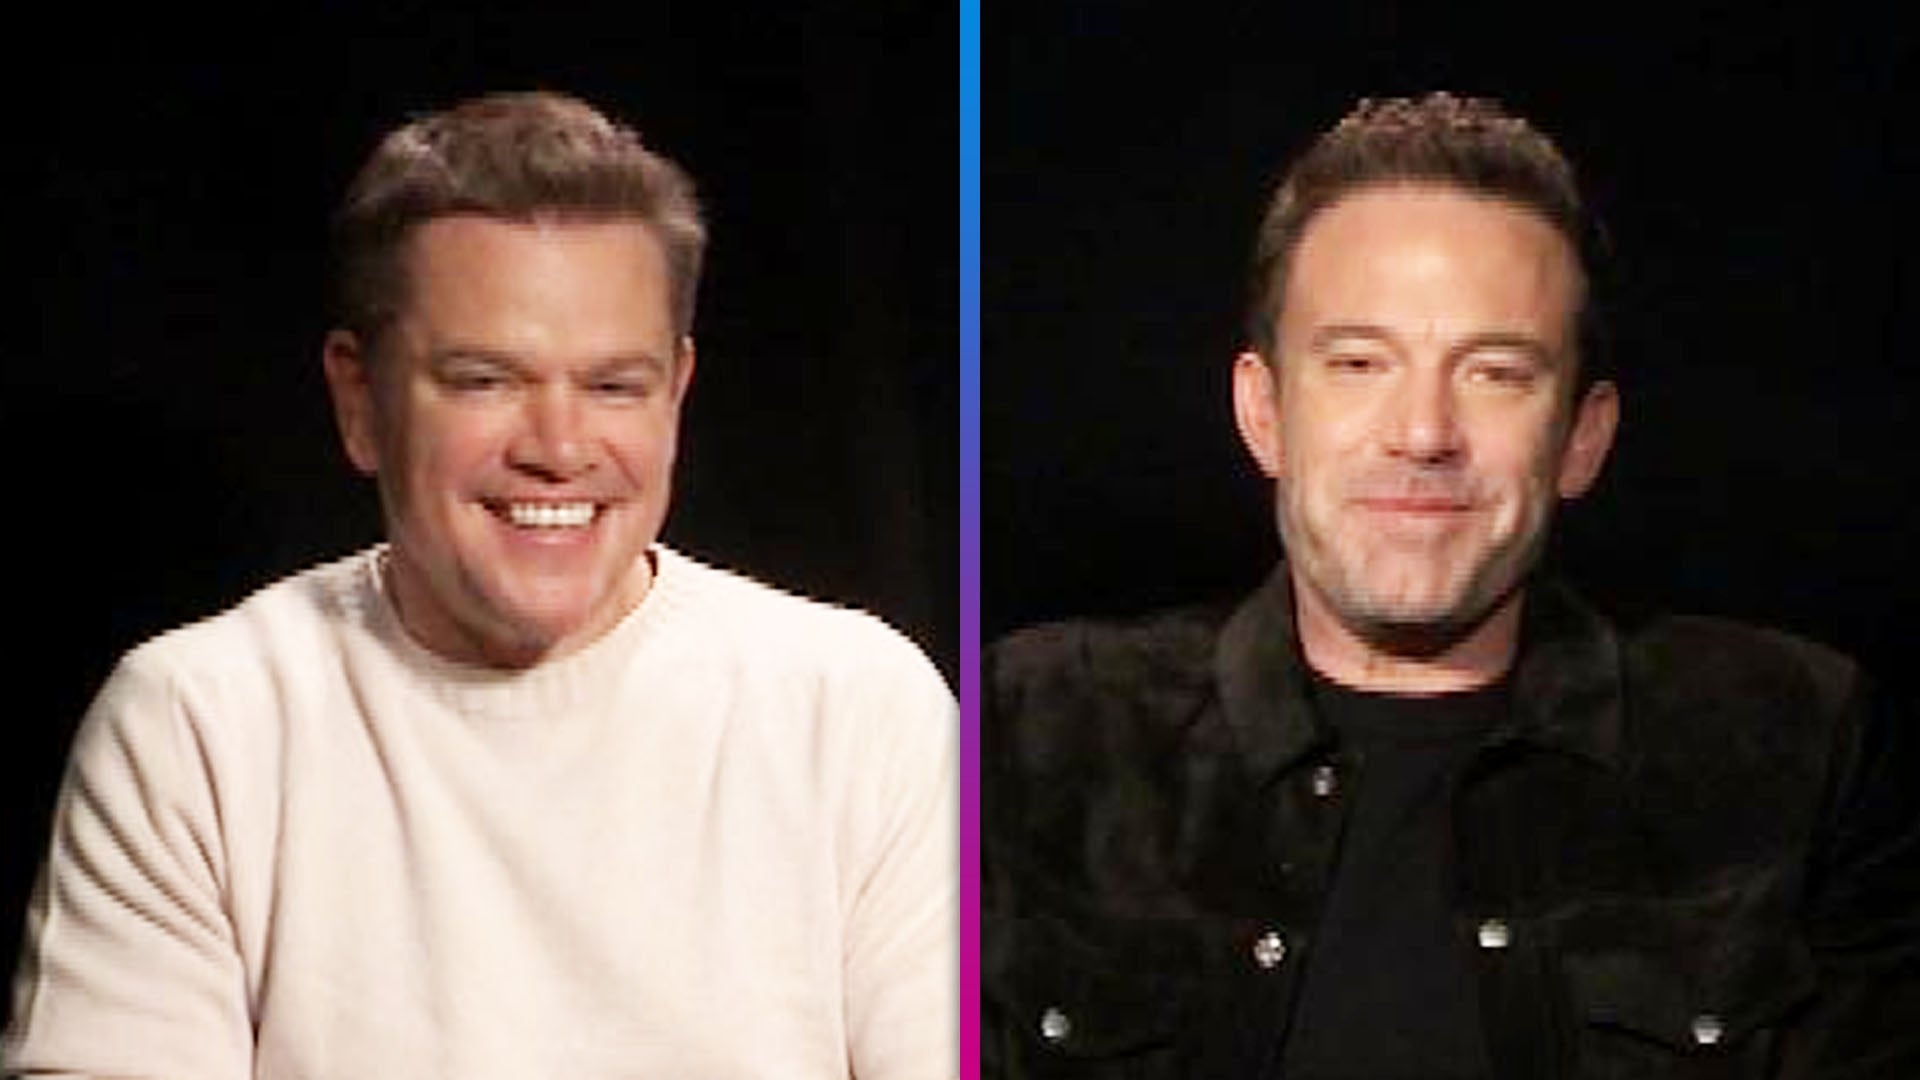 Ben Affleck Reveals His Kissing Scene With Matt Damon Was Cut From 'The Last Duel' (Exclusive)